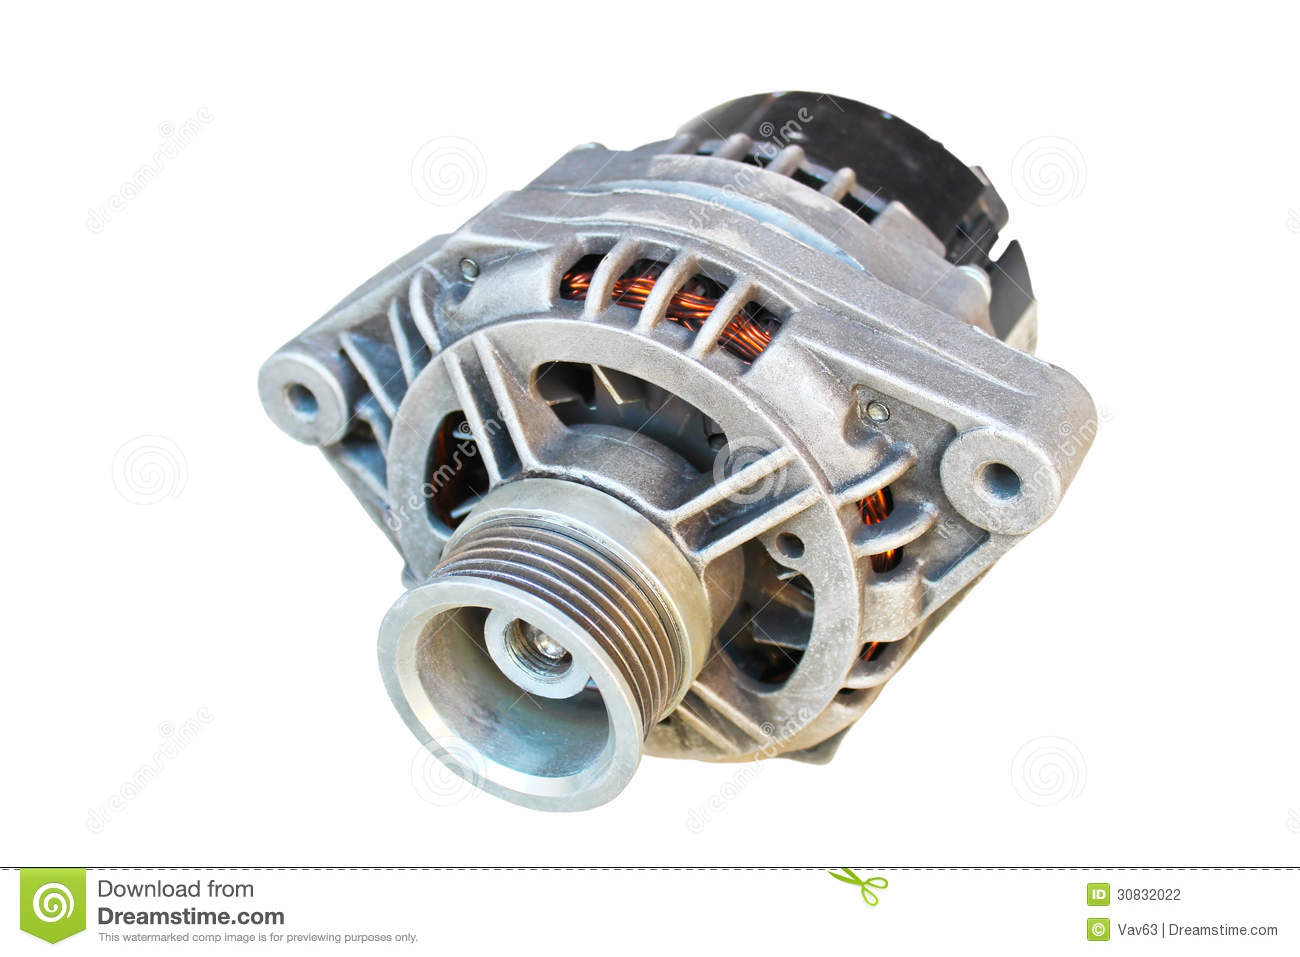 Alternatore automobilistico